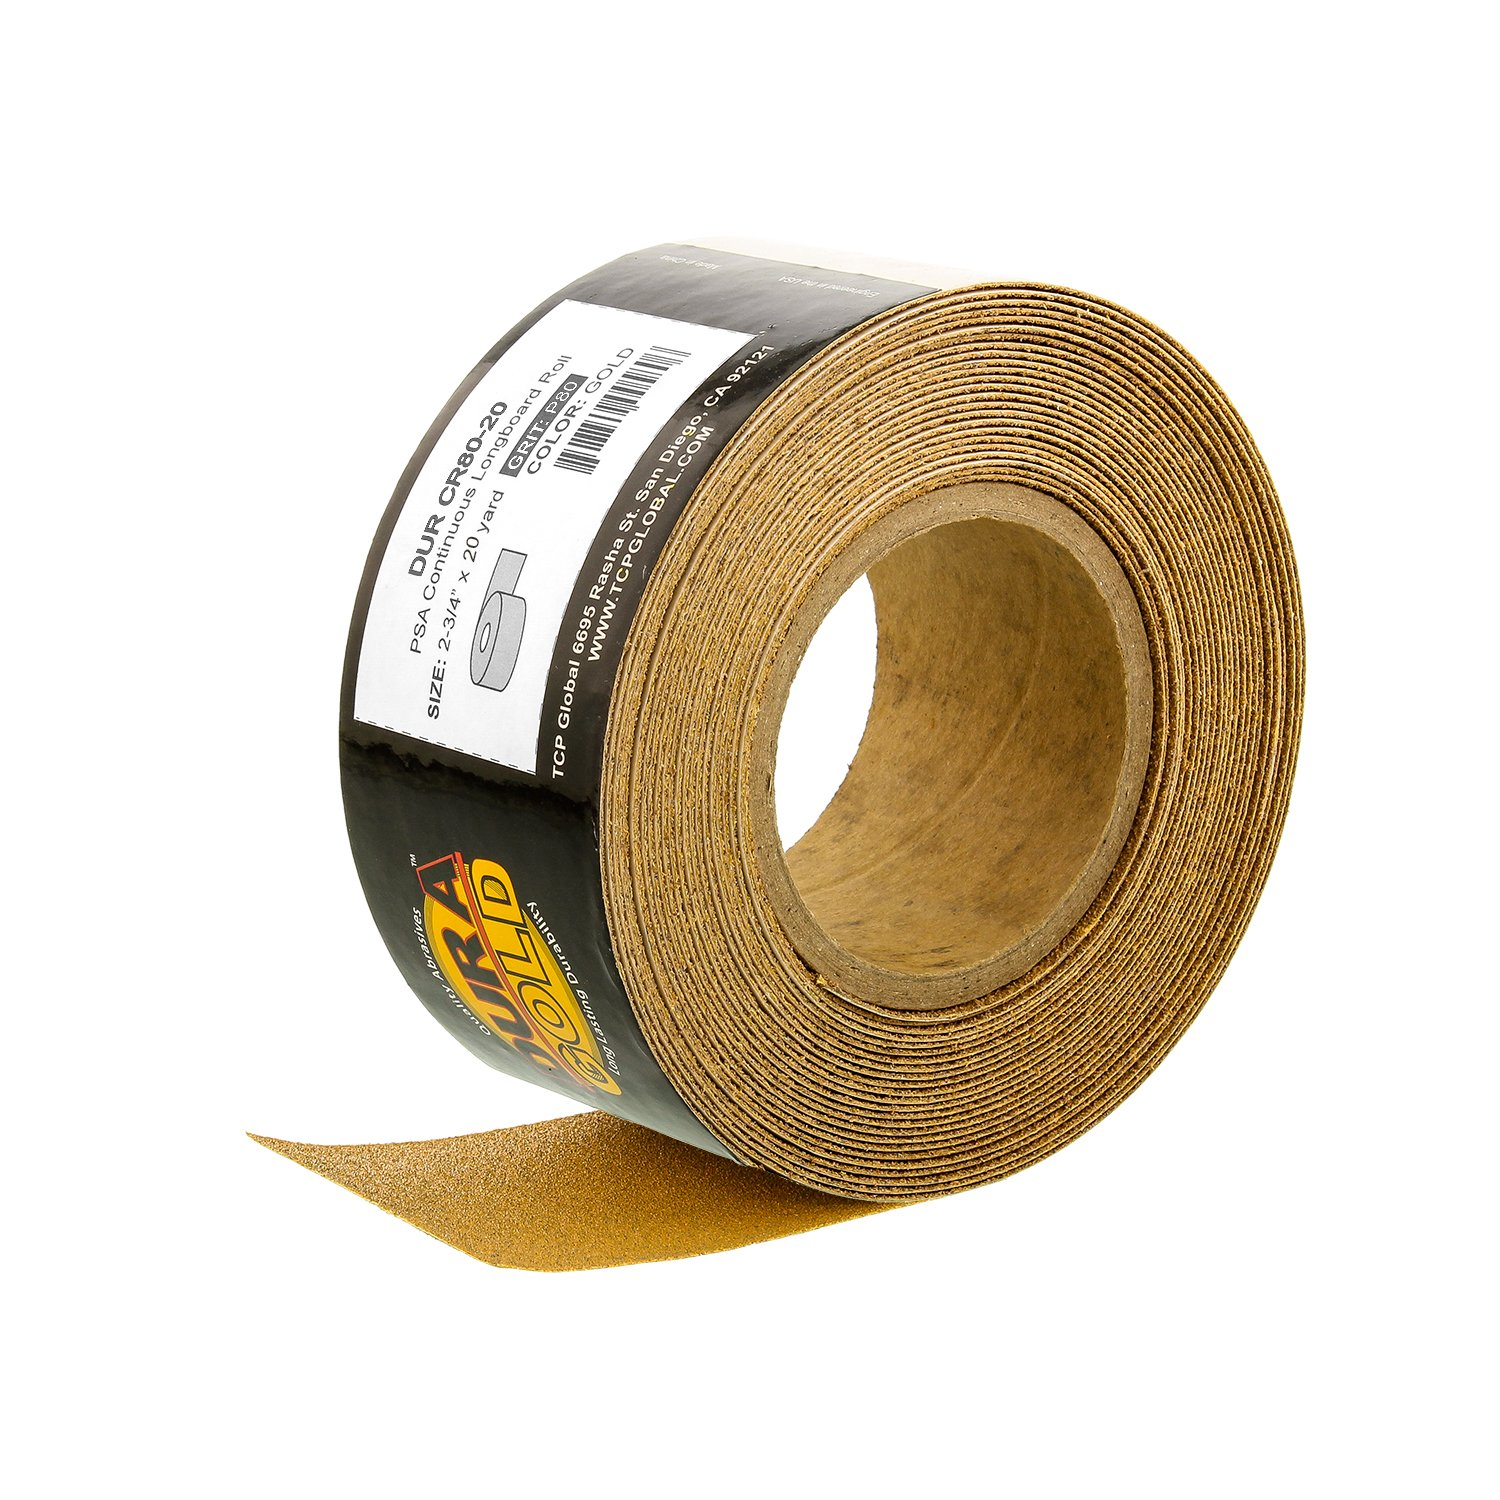 "Dura-Gold - Premium - 80 Grit Gold - Longboard Continuous Roll 20 Yards long by 2-3/4"" wide PSA Self Adhesive Stickyback Longboard Sandpaper for Automotive and Woodworking"